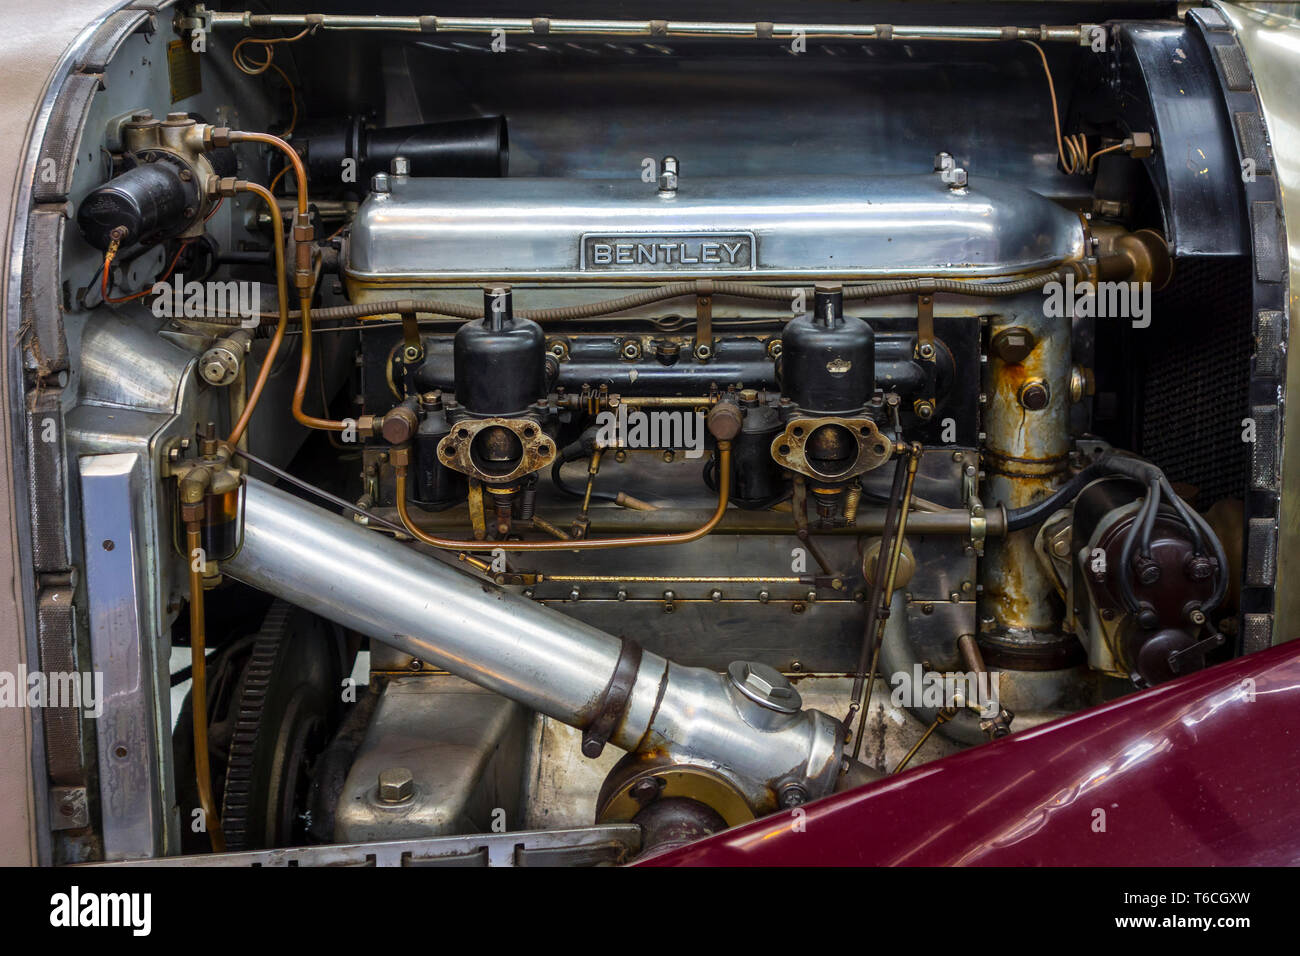 1928 British inline-four engine of Bentley 4½ Litre racing car at Autoworld, vintage car museum in Brussels, Belgium - Stock Image